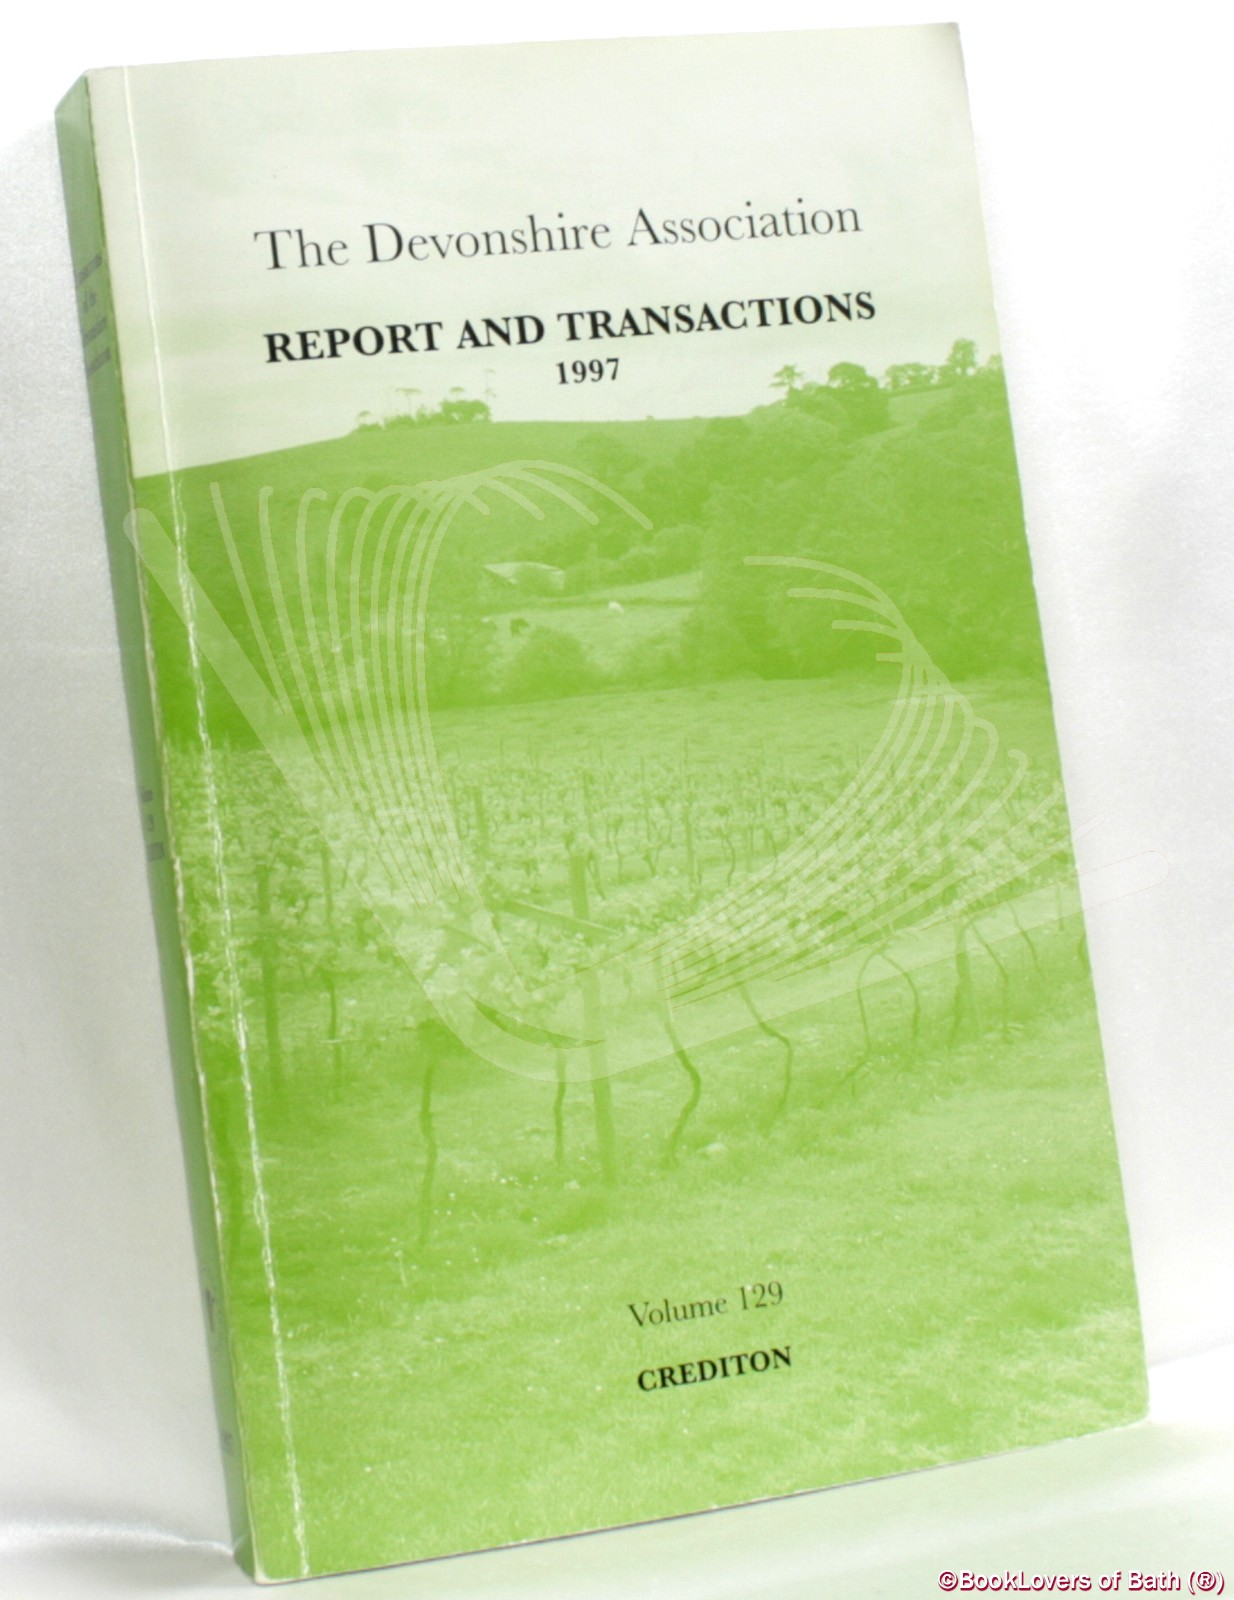 The Devonshire Association for the Advancement of Science, Literature and Art: Reports & Transactions Volume 129 Crediton 1997 - Anon.